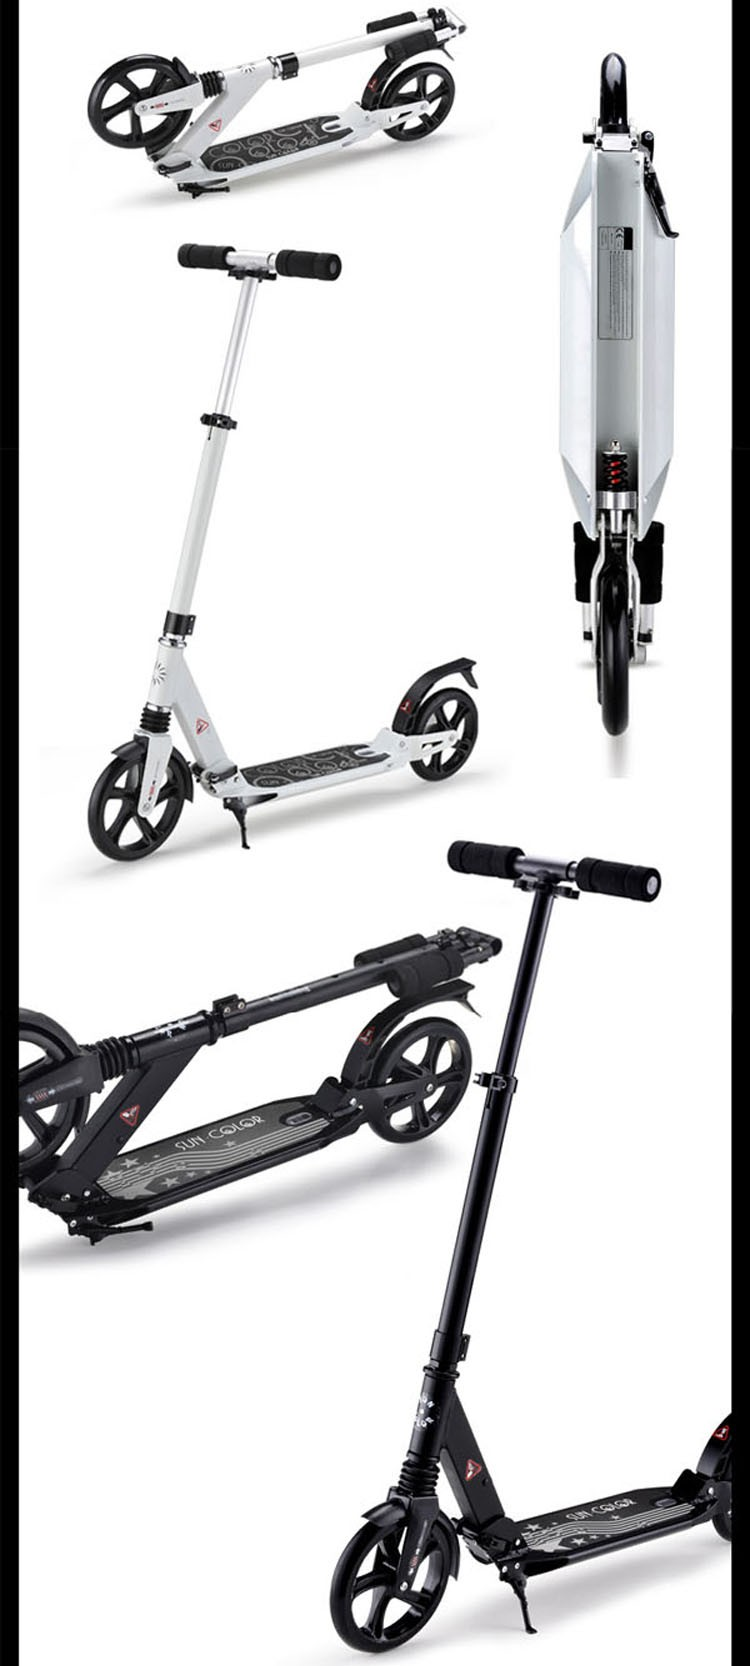 Hot selling full aluminum two big 200mm wheel kick scooter